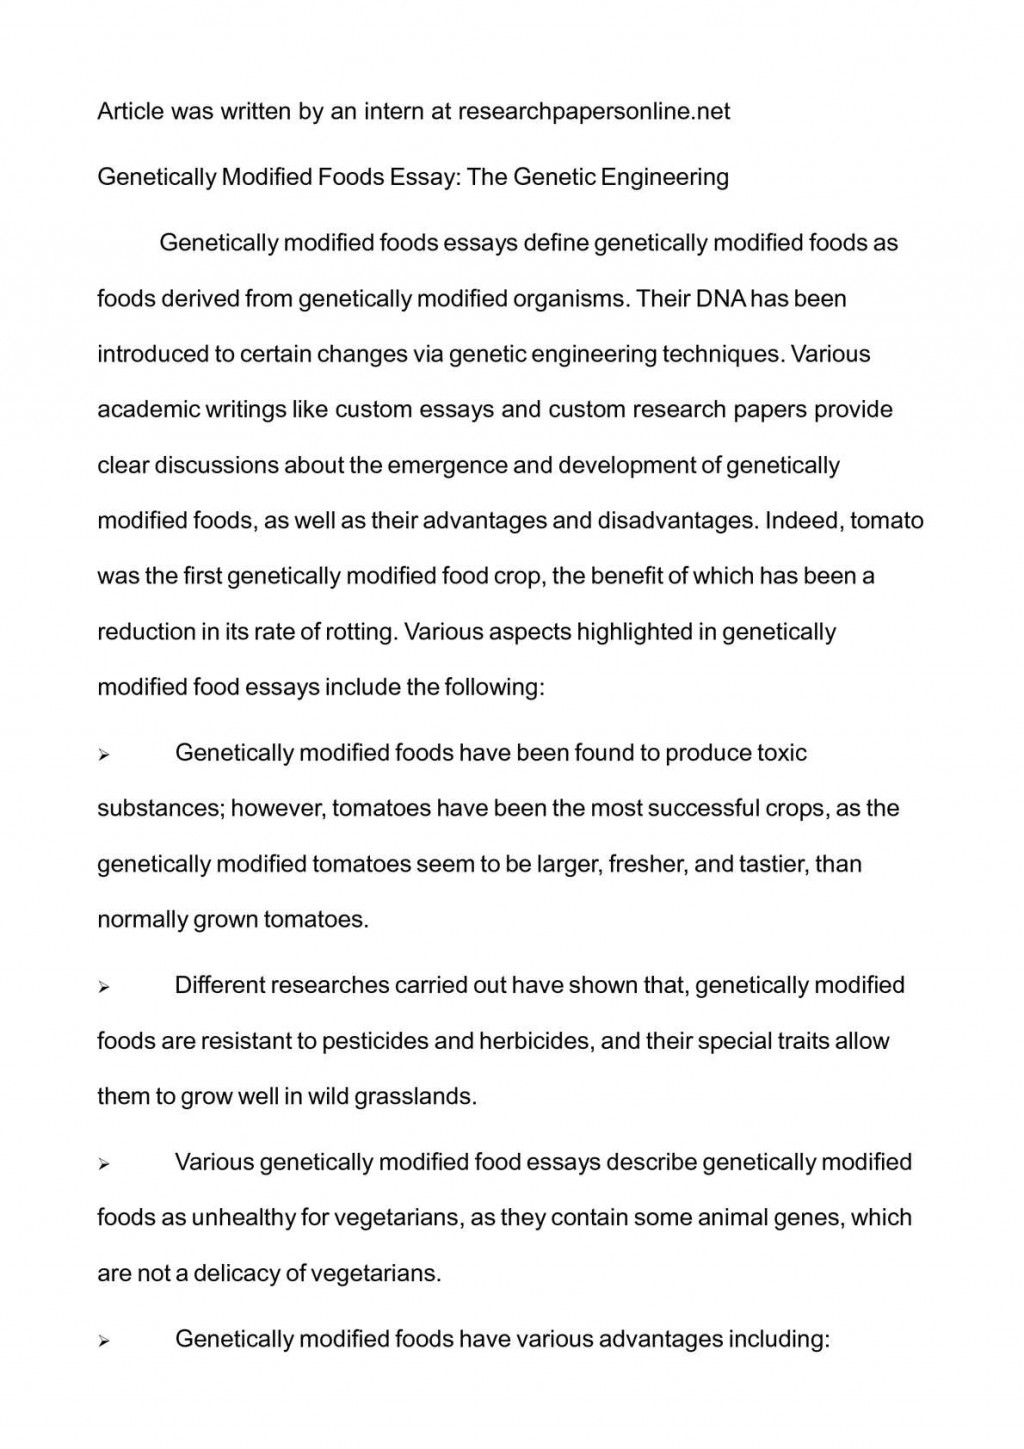 004 Essay About Genetic Engineering P1 Striking Disadvantages Of Argumentative On Human Persuasive Large